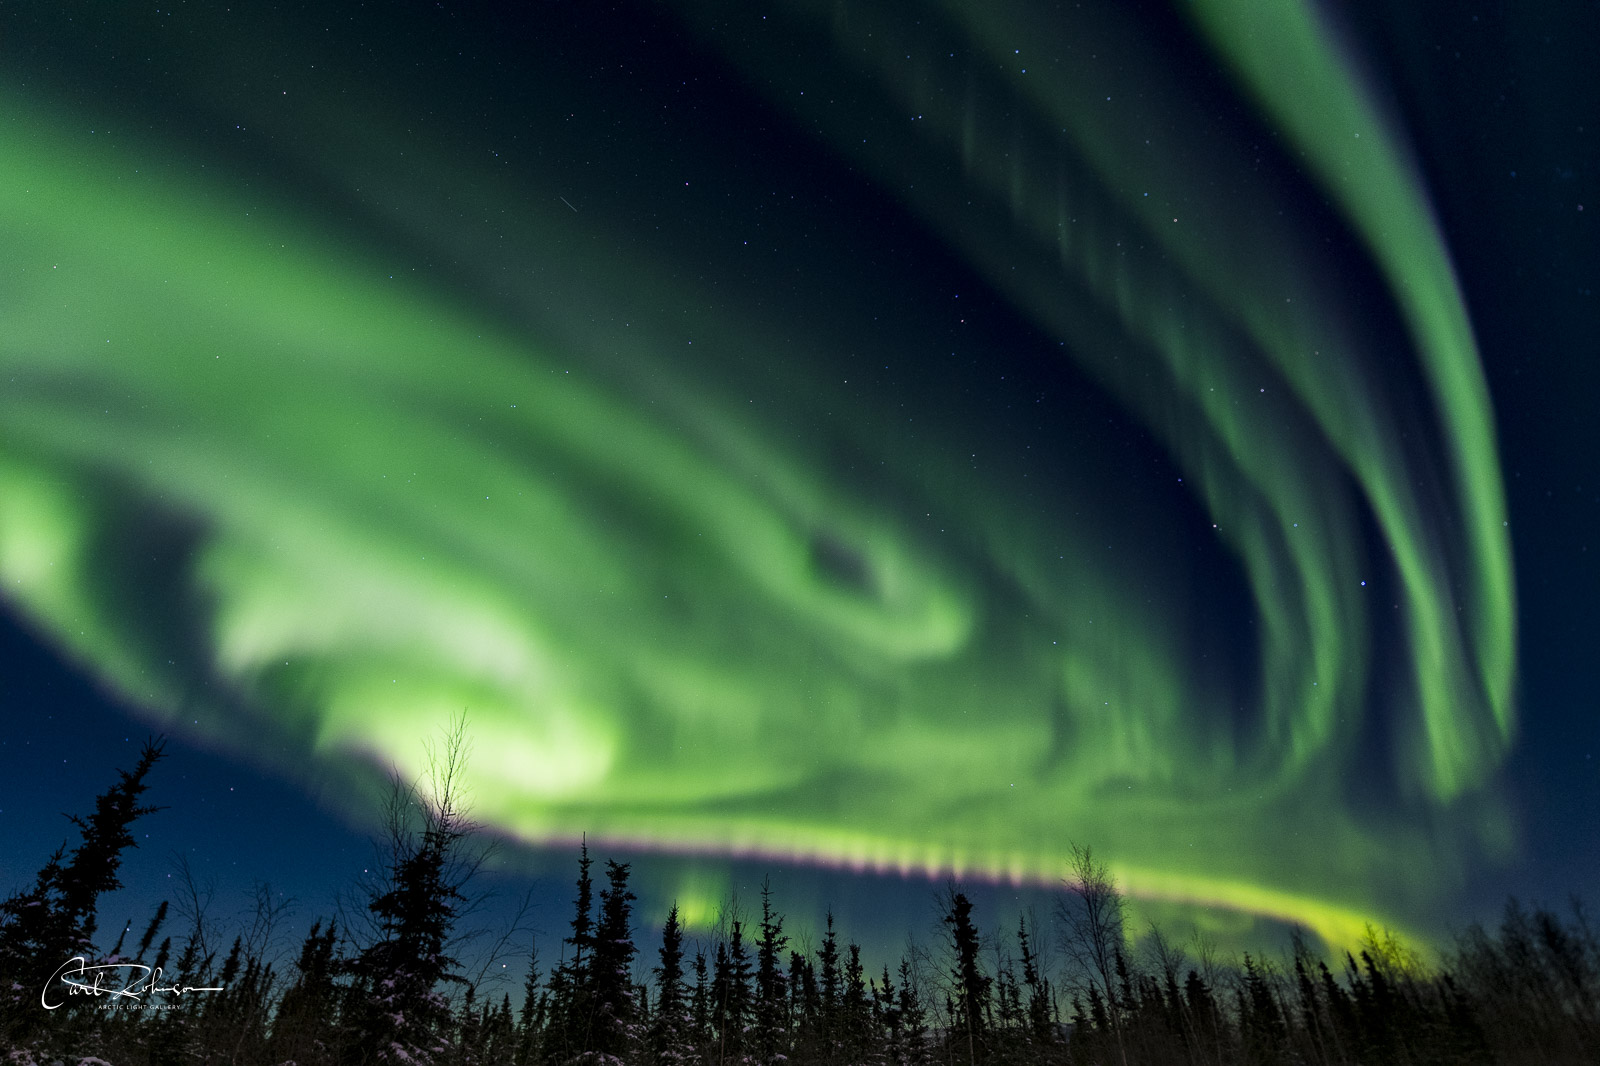 An active aurora borealis display fills the sky over some spruce trees near the beginning of the Dalton Highway.